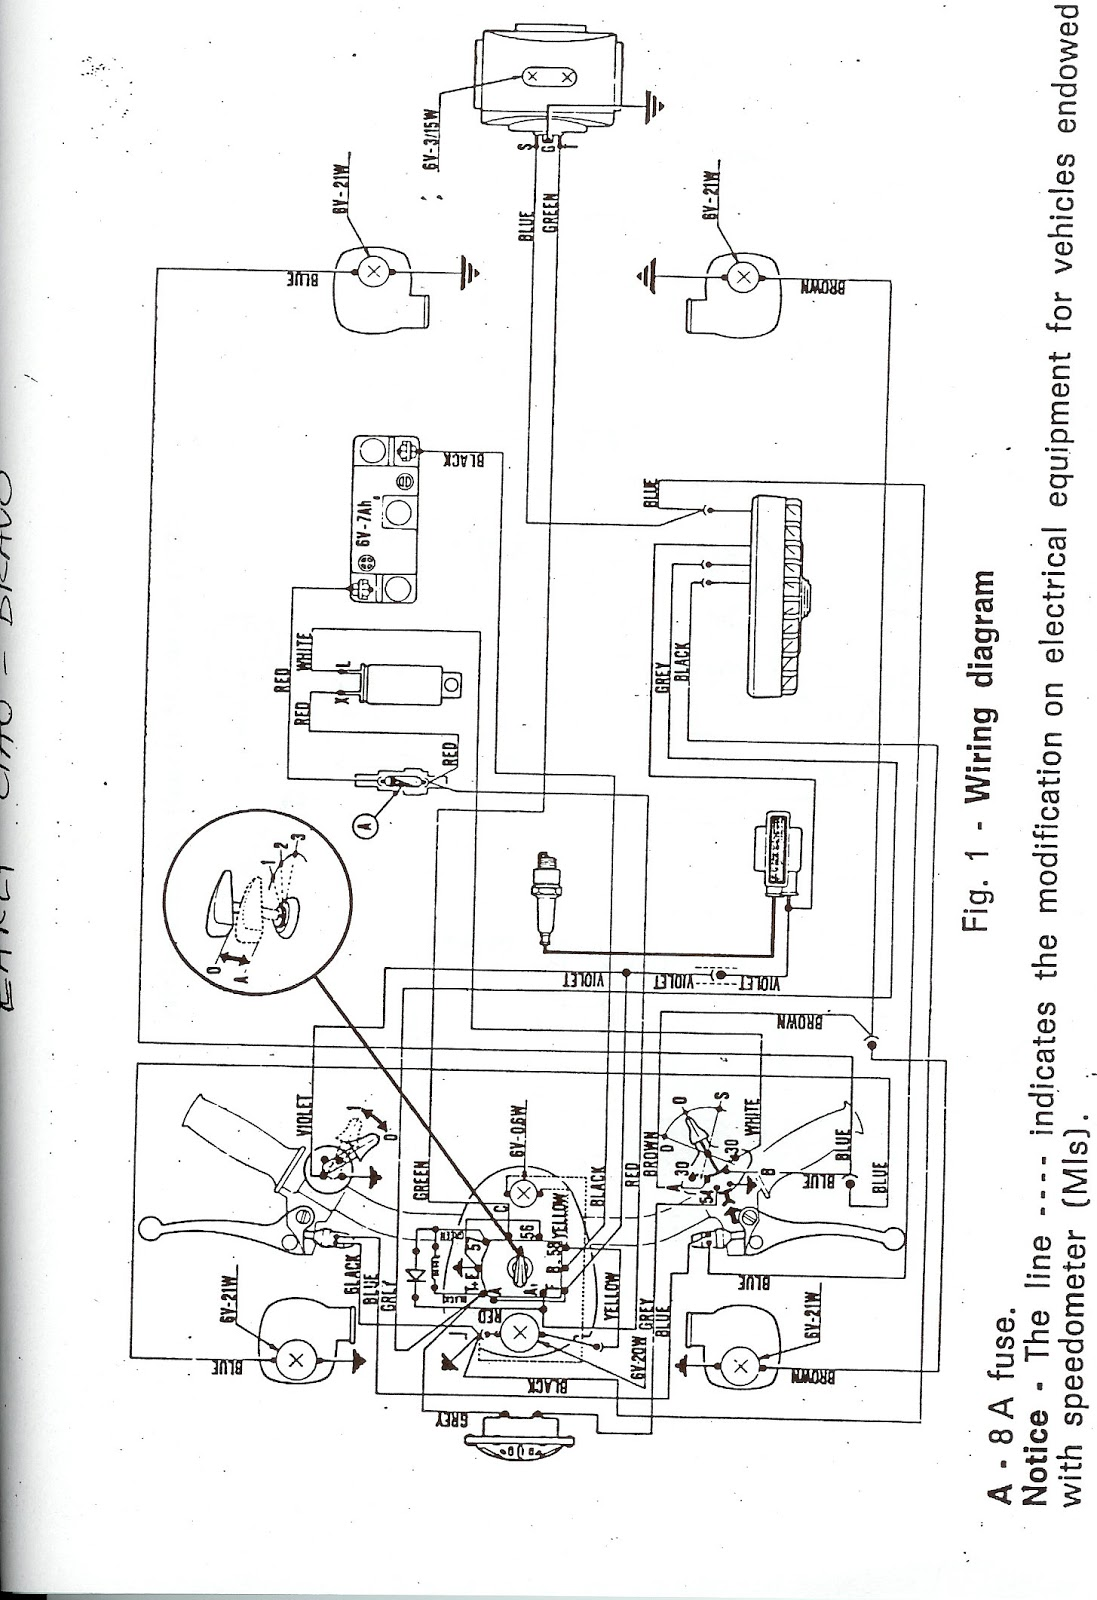 Puch Maxi Wiring Diagram Newport Free Engine Image For Hz Holden Ignition Switch Moped 25 Images